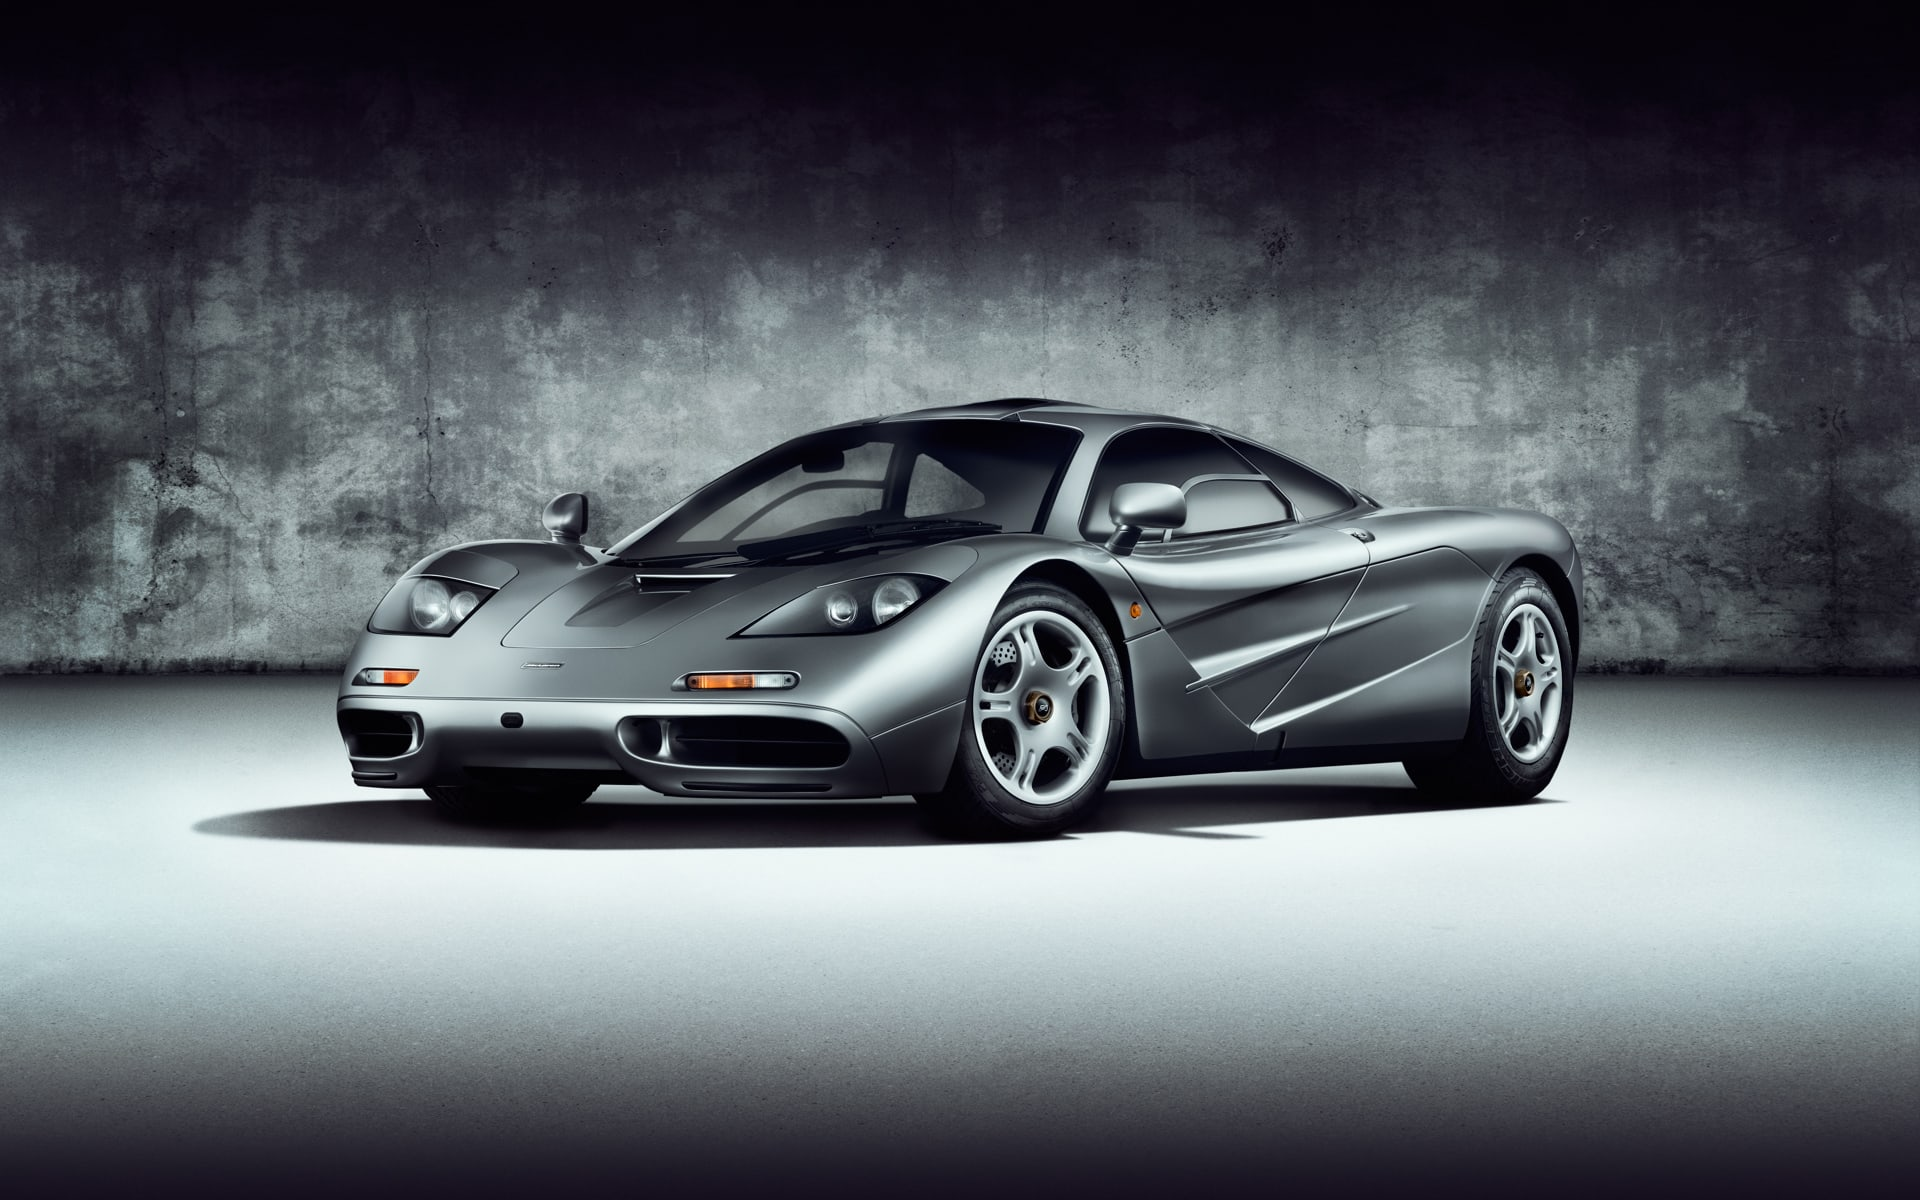 McLaren F1 photographed in studio by Arizona Photographer Blair Bunting